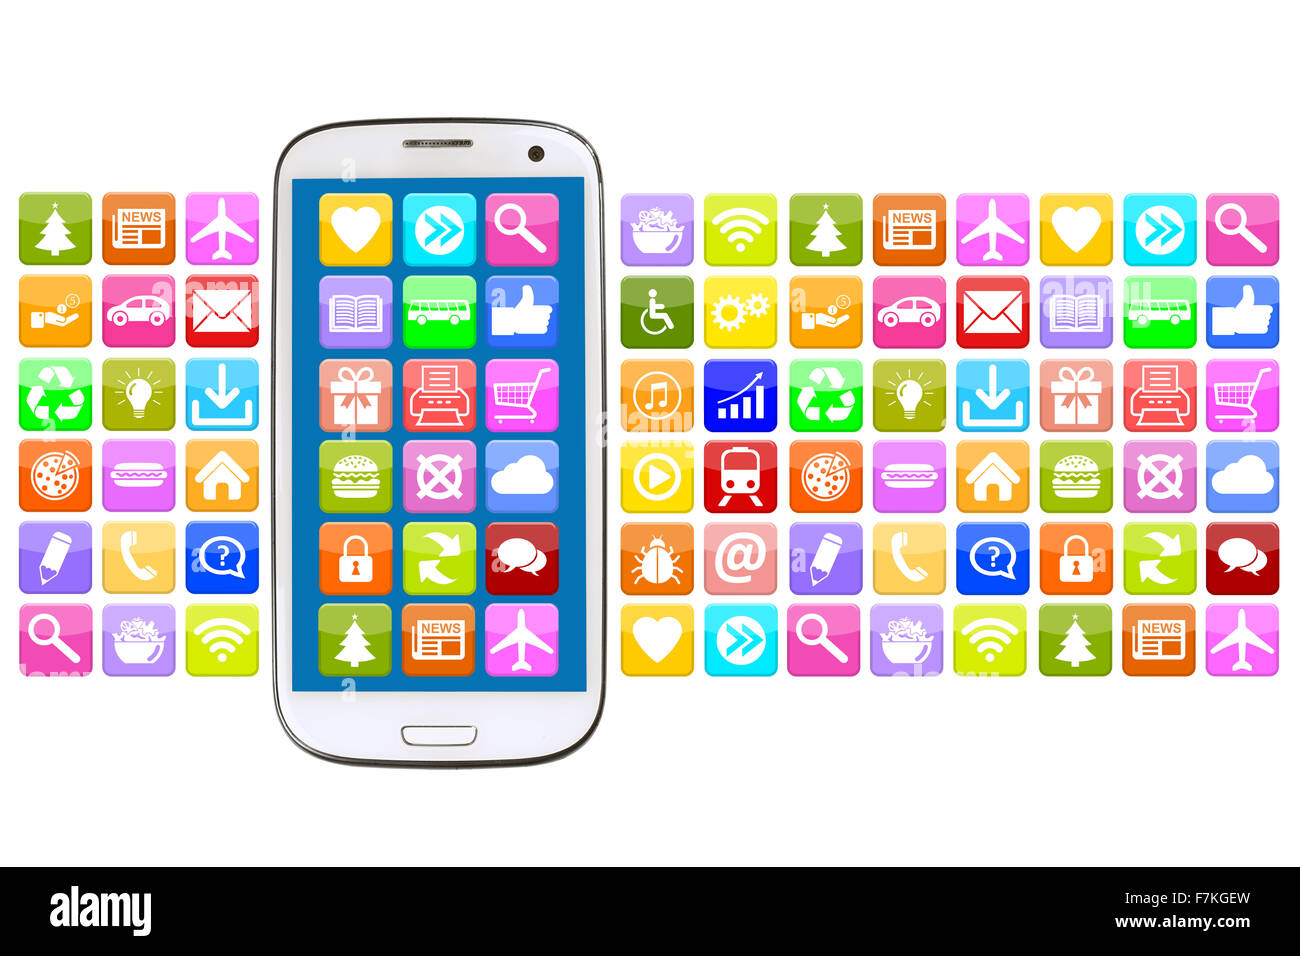 Smart phone with application apps app for internet communication - Stock Image